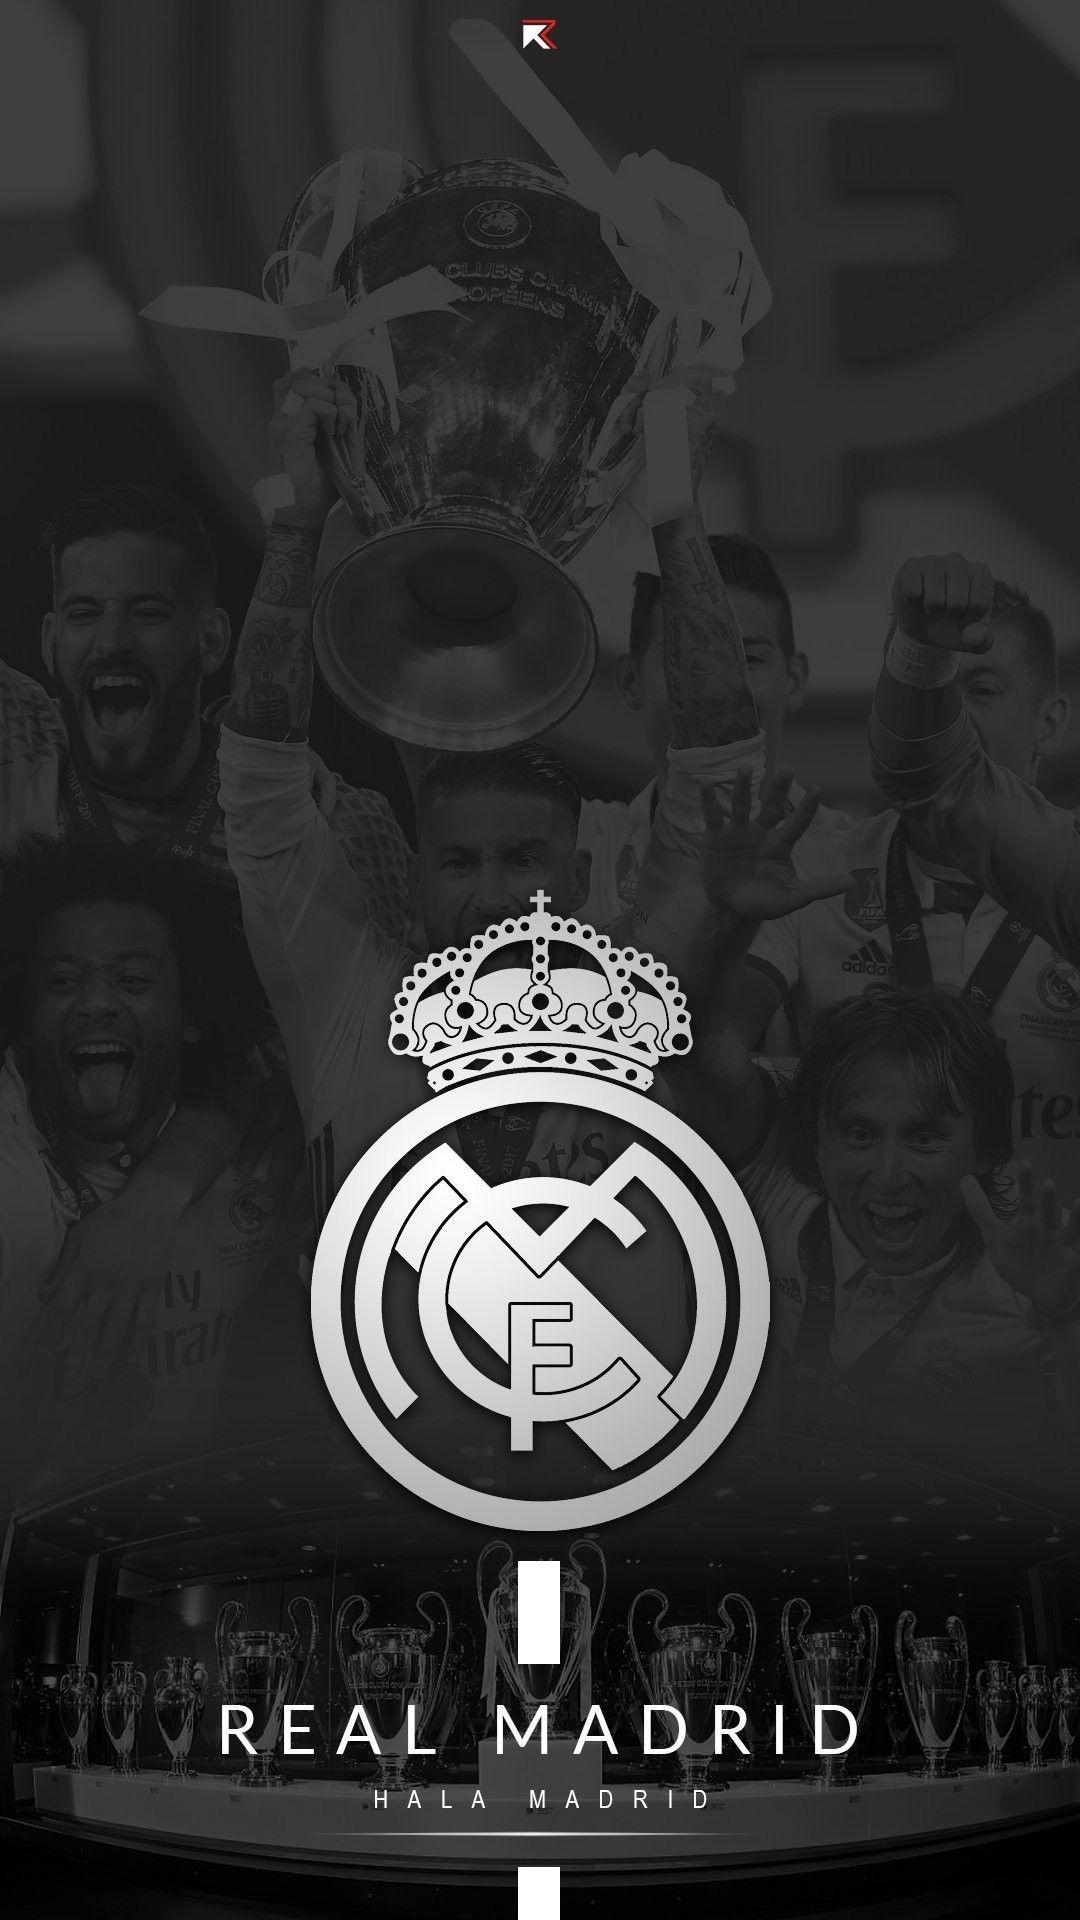 Real Madrid Wallpaper Equipo 2018 Hd Football In 2020 Madrid Wallpaper Real Madrid Wallpapers Real Madrid Team